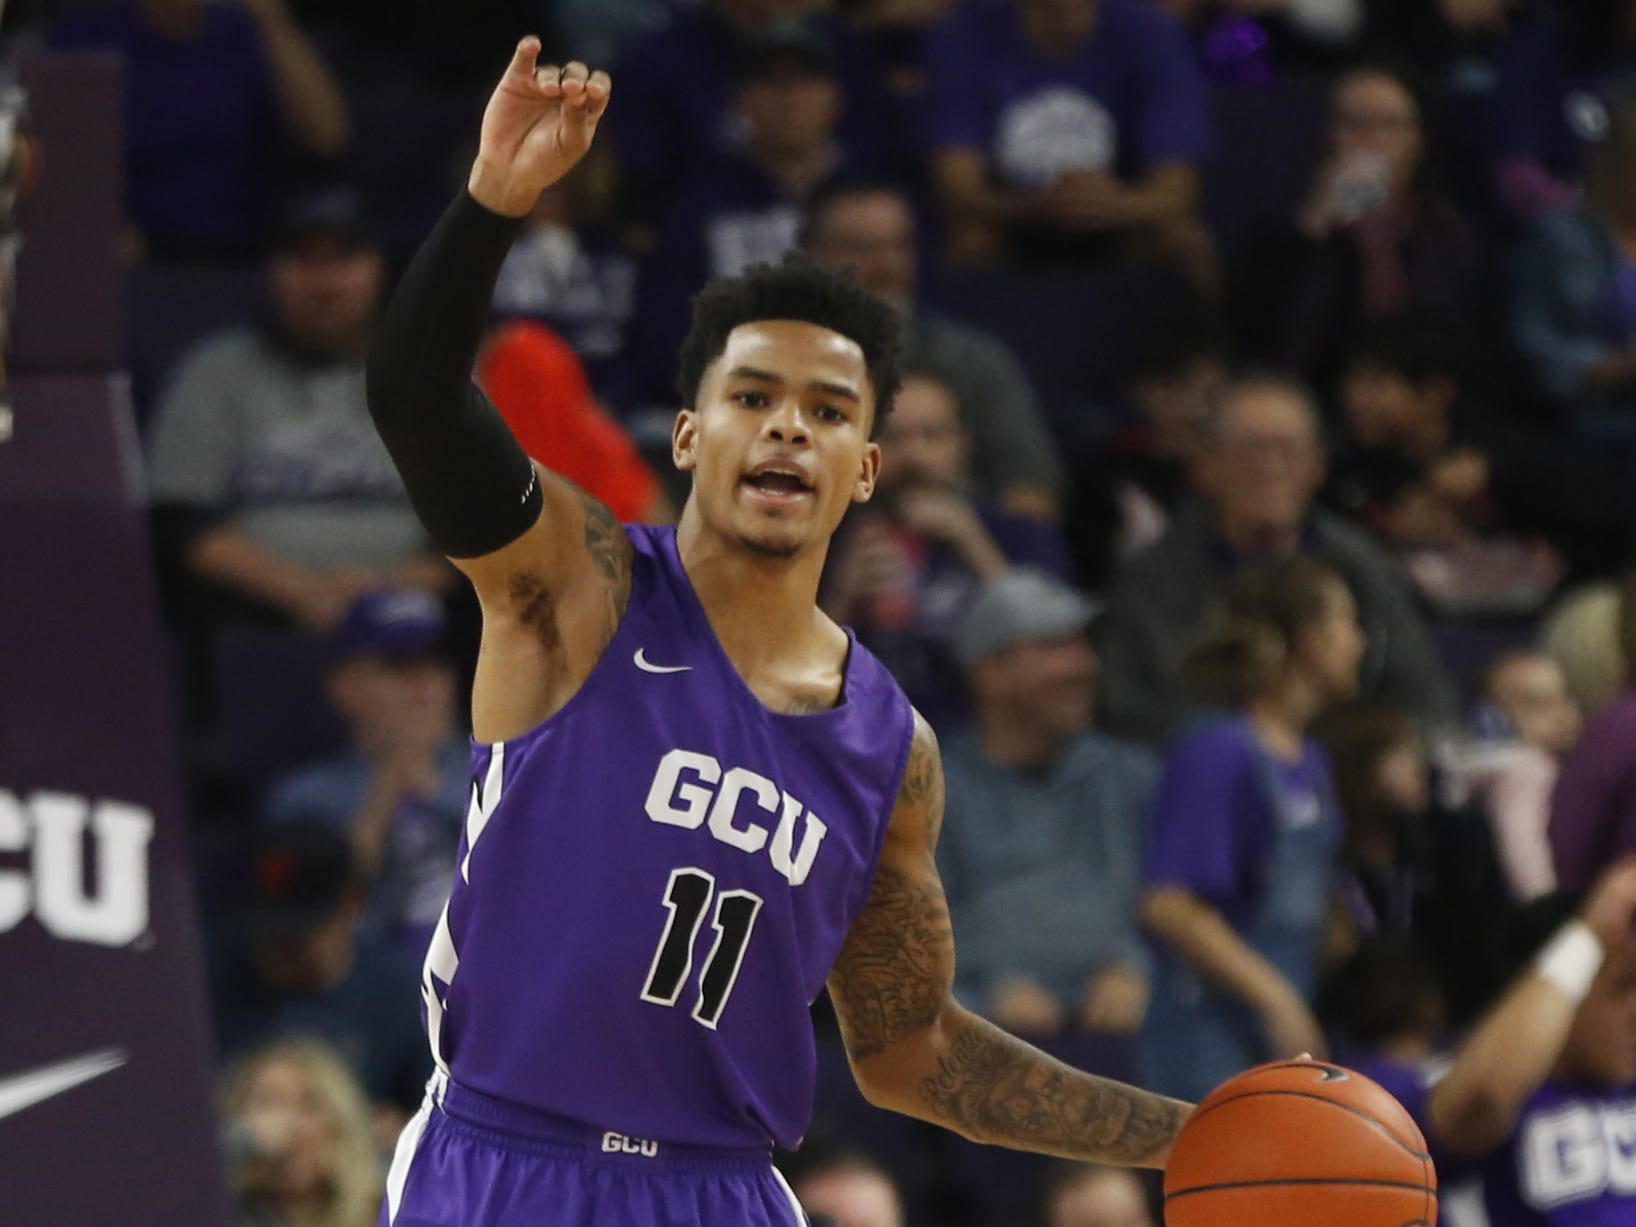 GCU's Damari Milstead (11) dribbles up the court against New Mexico State during the first half at Grand Canyon University Arena in Phoenix, Ariz. on February 9, 2019.